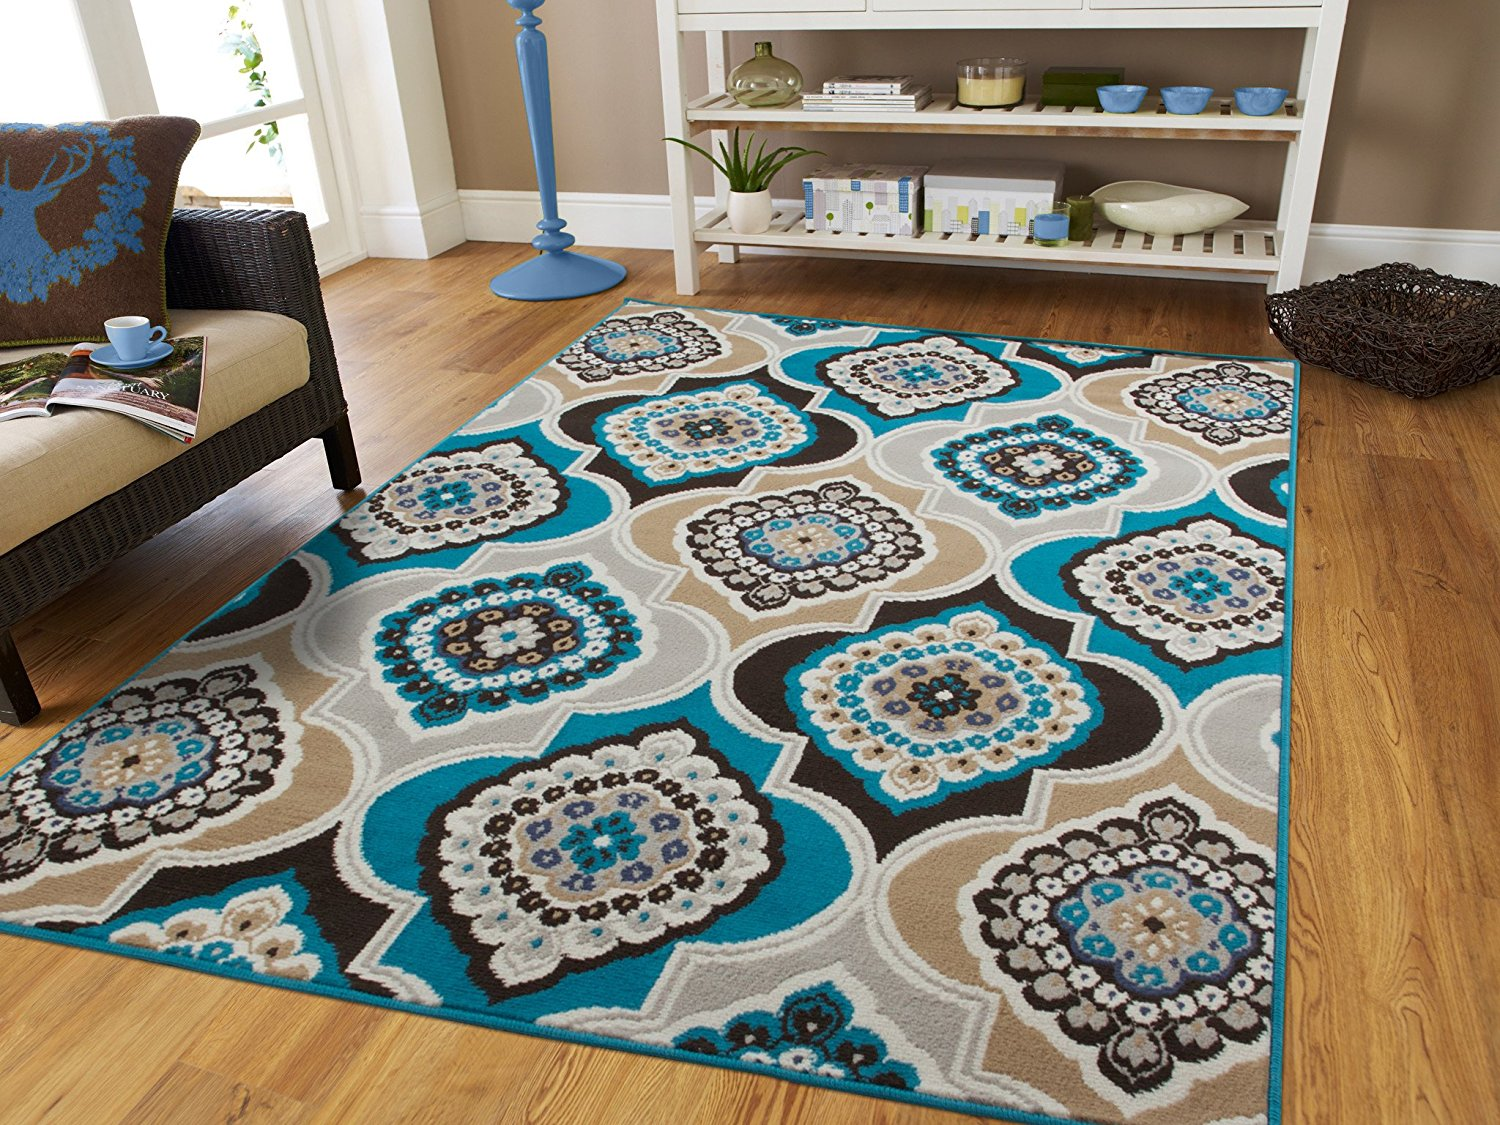 Ctemporary Area Rugs Blue 5x8 Area Rugs5x7 Blue Gray Rugs For Living Room Cheap Bedroom Office Rug 5x7 Modern Area Rug Under 50 00blue Walmart Com Walmart Com